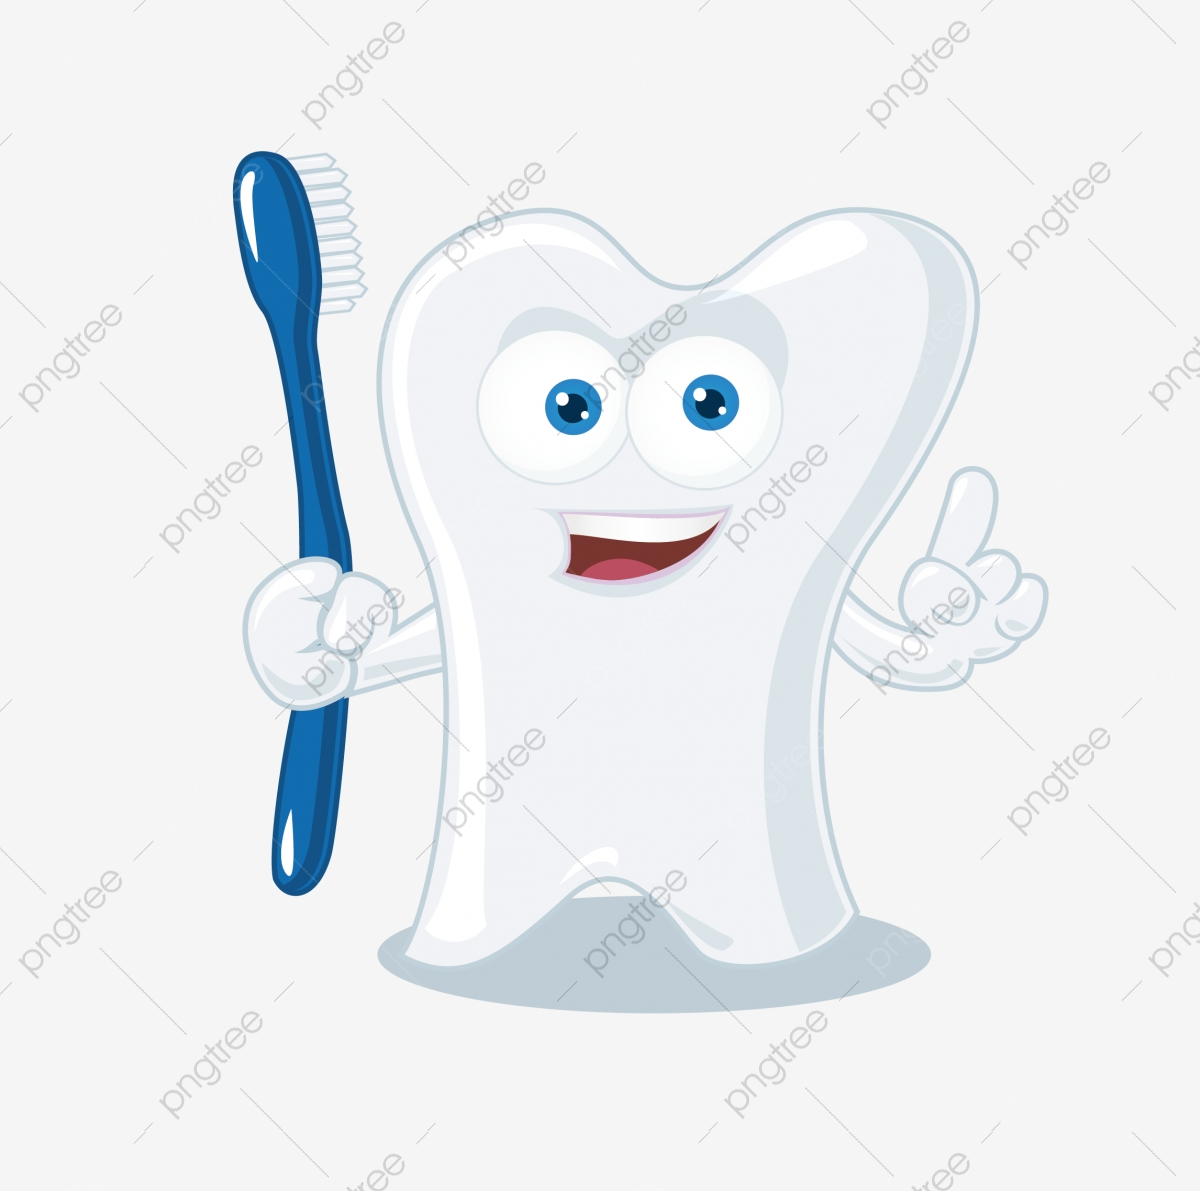 Tooth Fairy Tooth Clipart Long Hair Magic Png And Vector With Transparent Background For Free Download